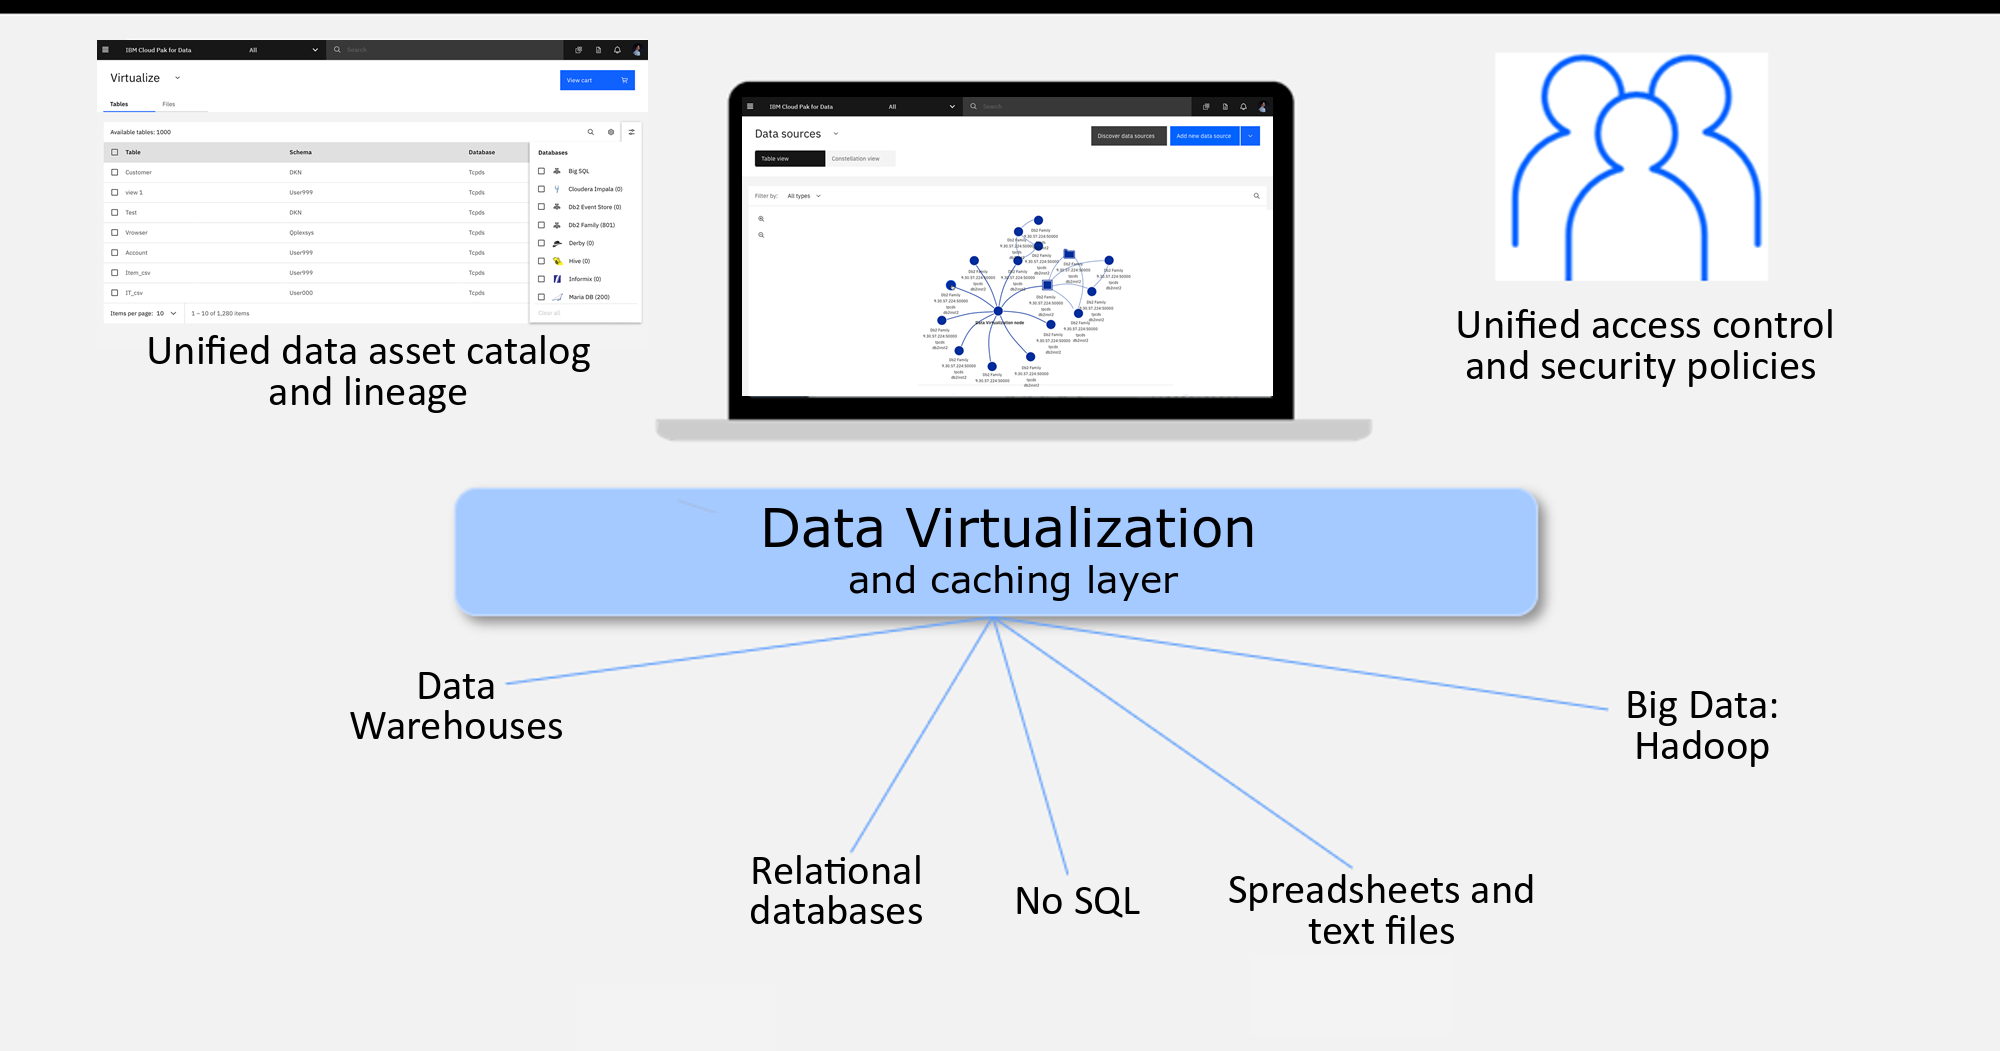 The image shows how Data Virtualization connects multiple data sources into a single self-balancing collection of data sources or databases.